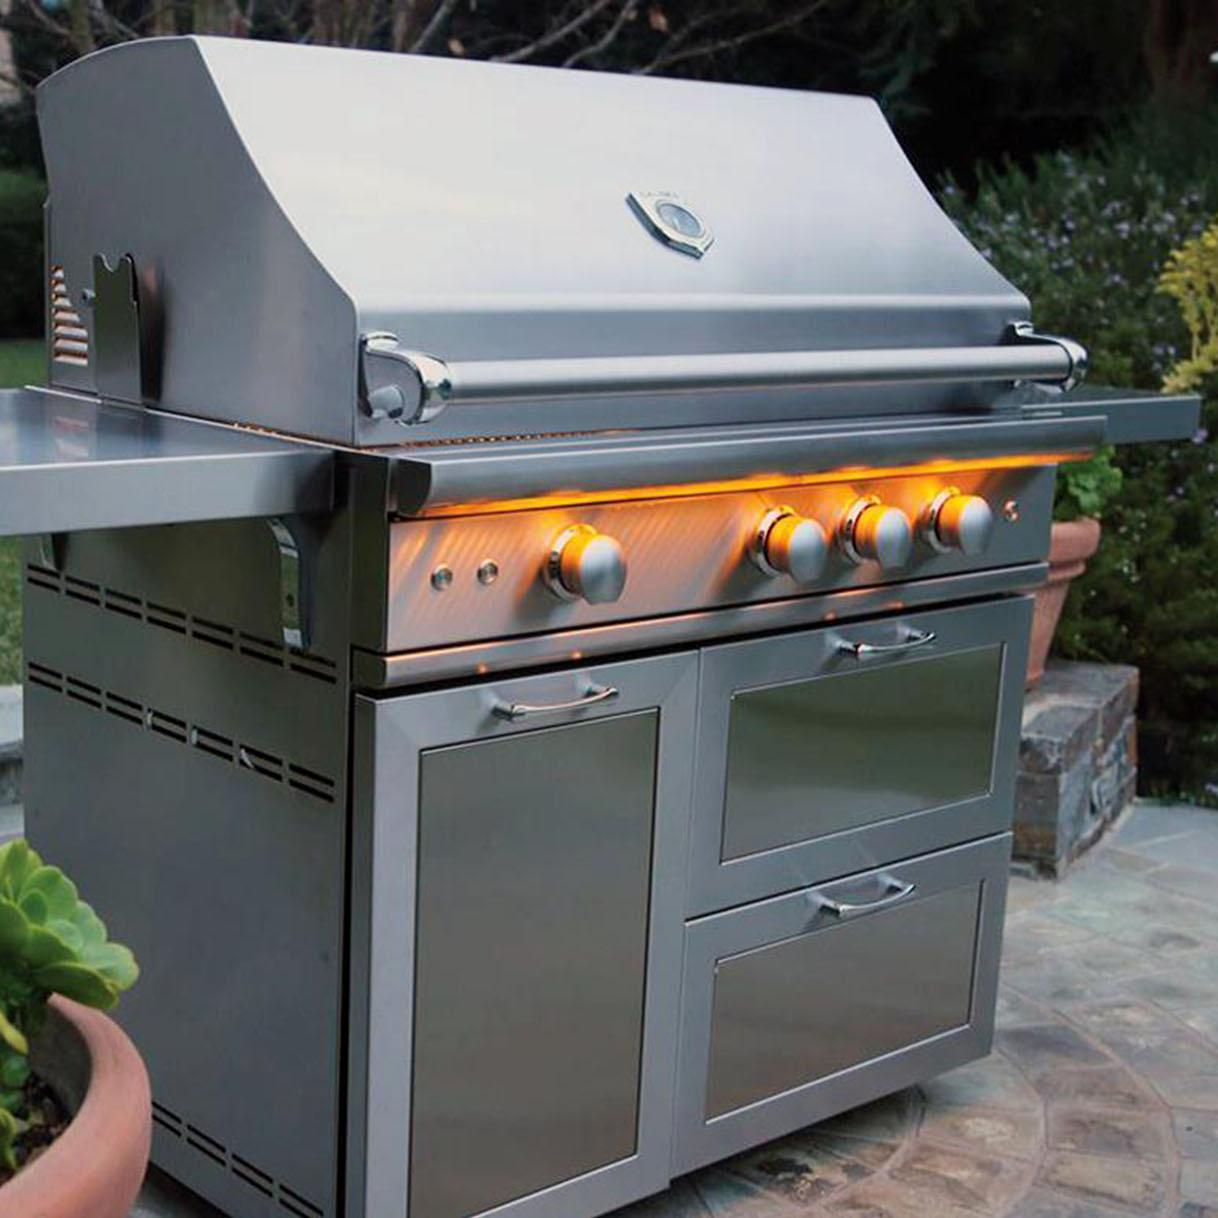 Caliber CrossFlame Pro 42″ Gas Grill - This Grill Is An ...